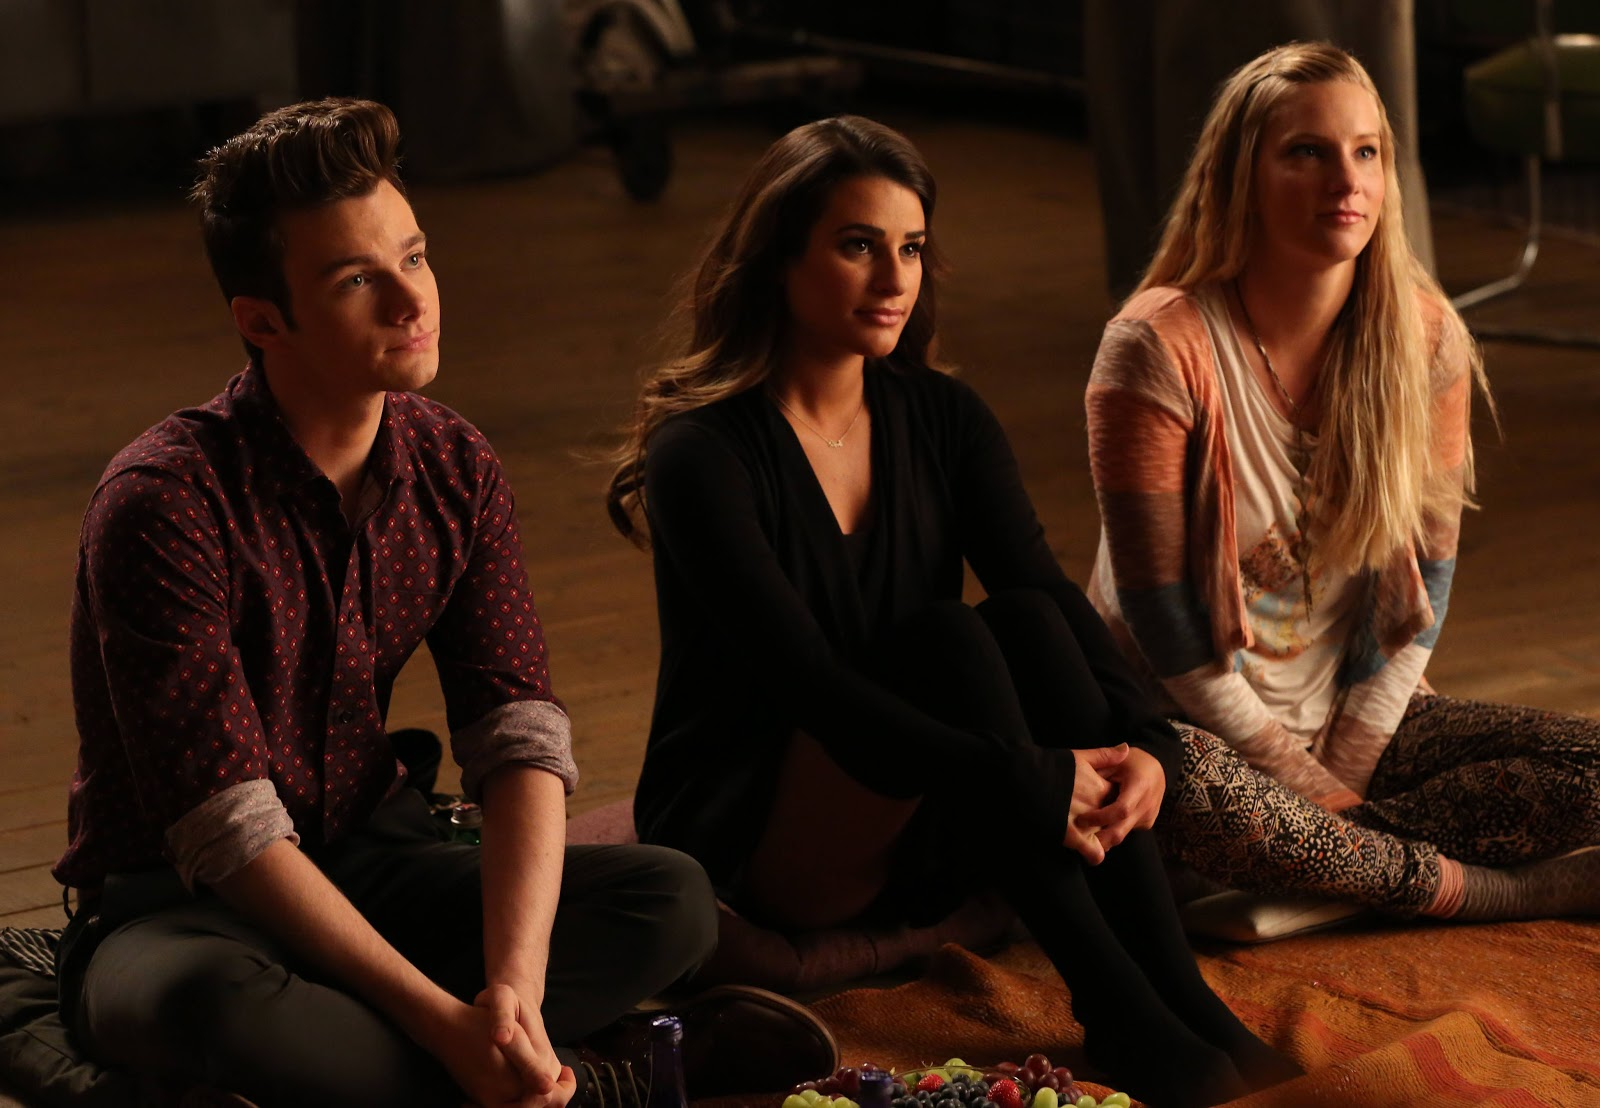 Glee - Episode 5.20 - The Untitled Rachel Berry Project (Season Finale) - Promotional Photos